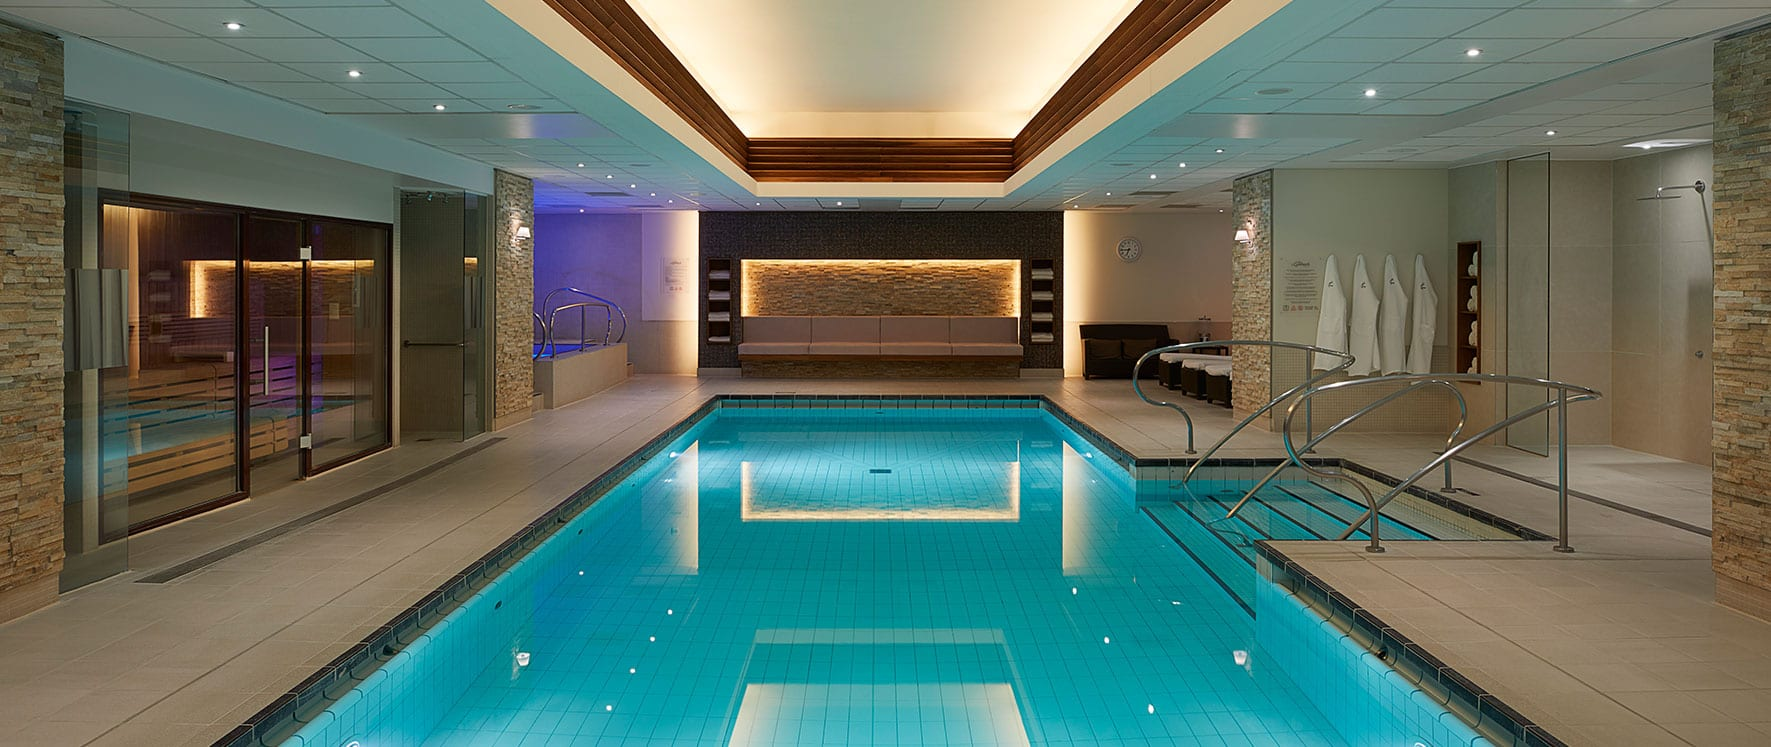 Jacuzzi Pool Preise Spa Gym Marylebone With Massage And Beauty Treatments The